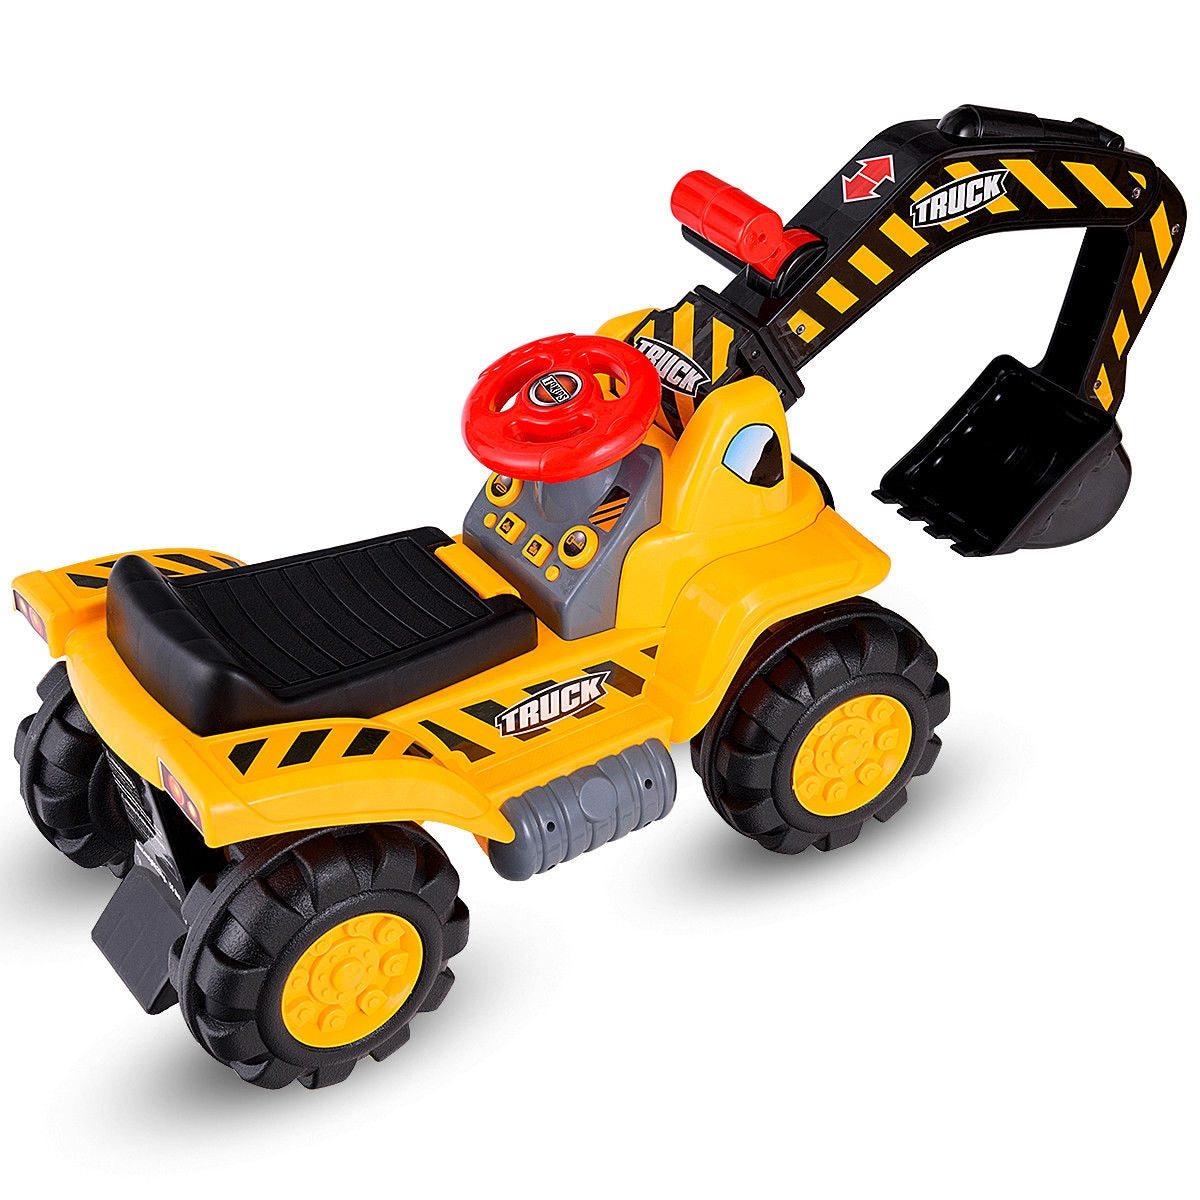 Kids Toddler Ride On Excavator Digger Truck Scooter C263 - Baby World Inc